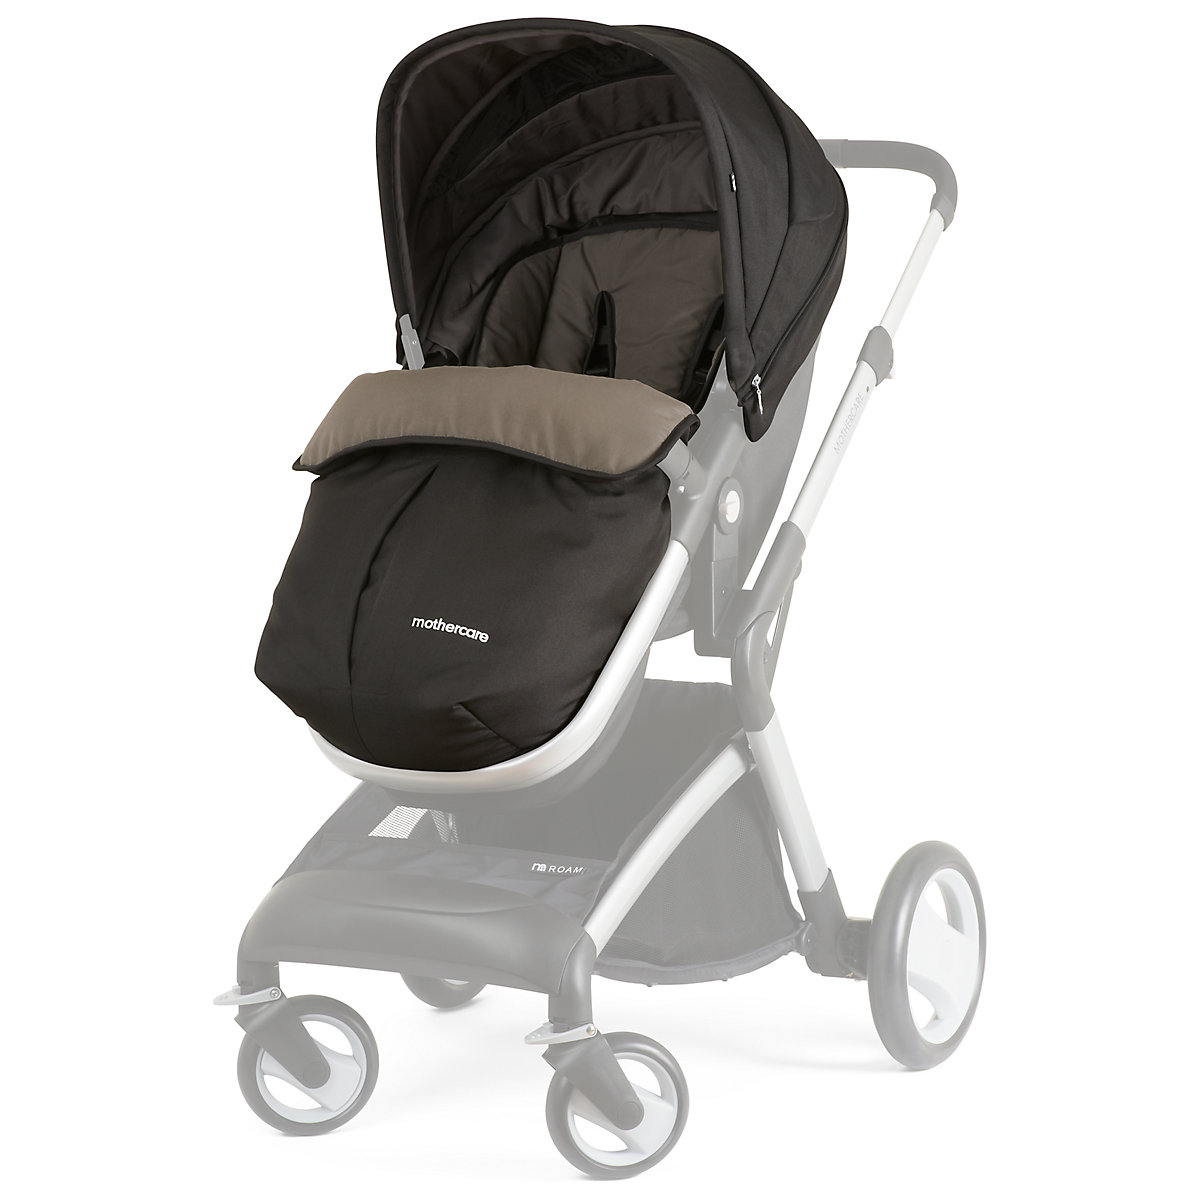 Buy Now Pay Later Car Seats